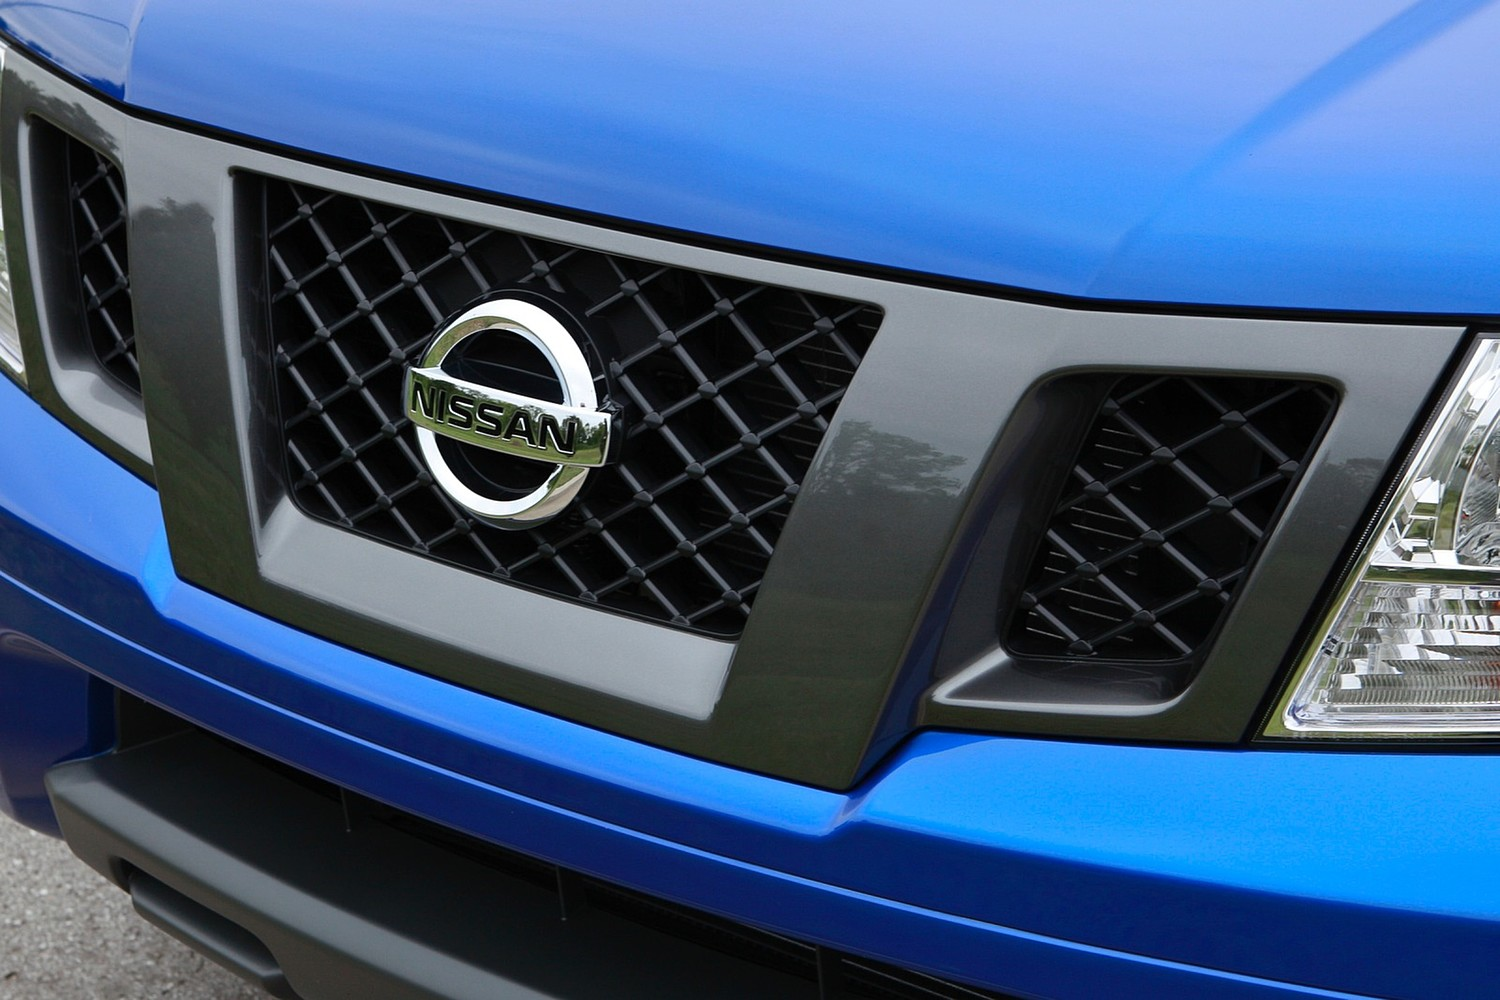 Nissan Frontier SV Extended Cab Pickup Front Badge (2013 model year shown)